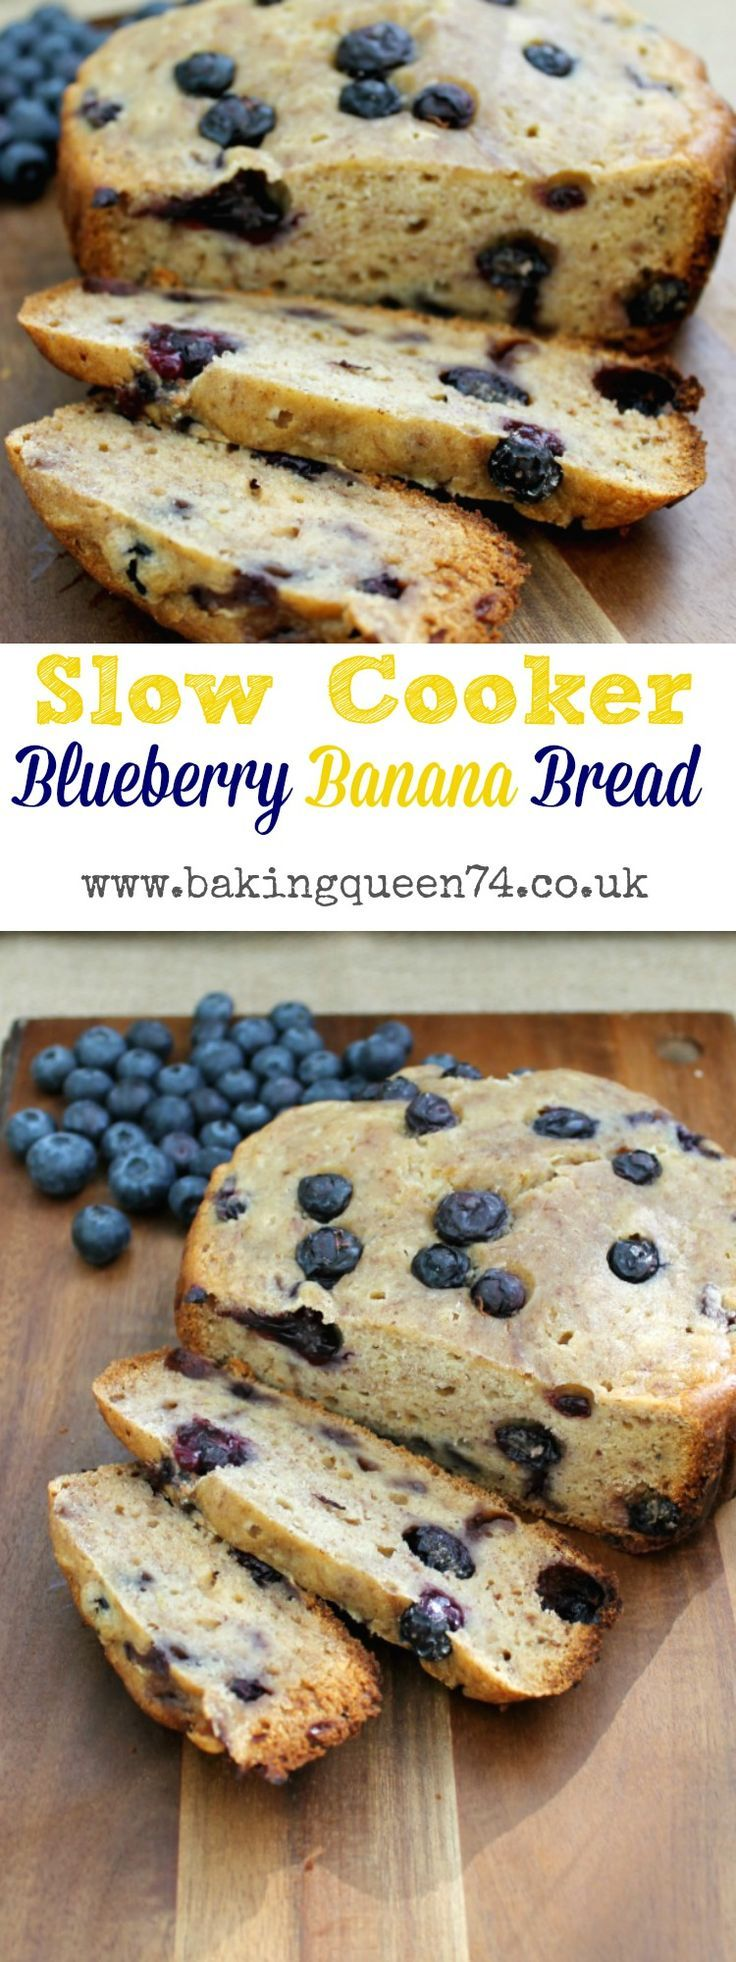 Slow Cooker Blueberry Banana Bread - this simple healthy banana bread has no refined sugar and is made with coconut oil and full of fruity goodness